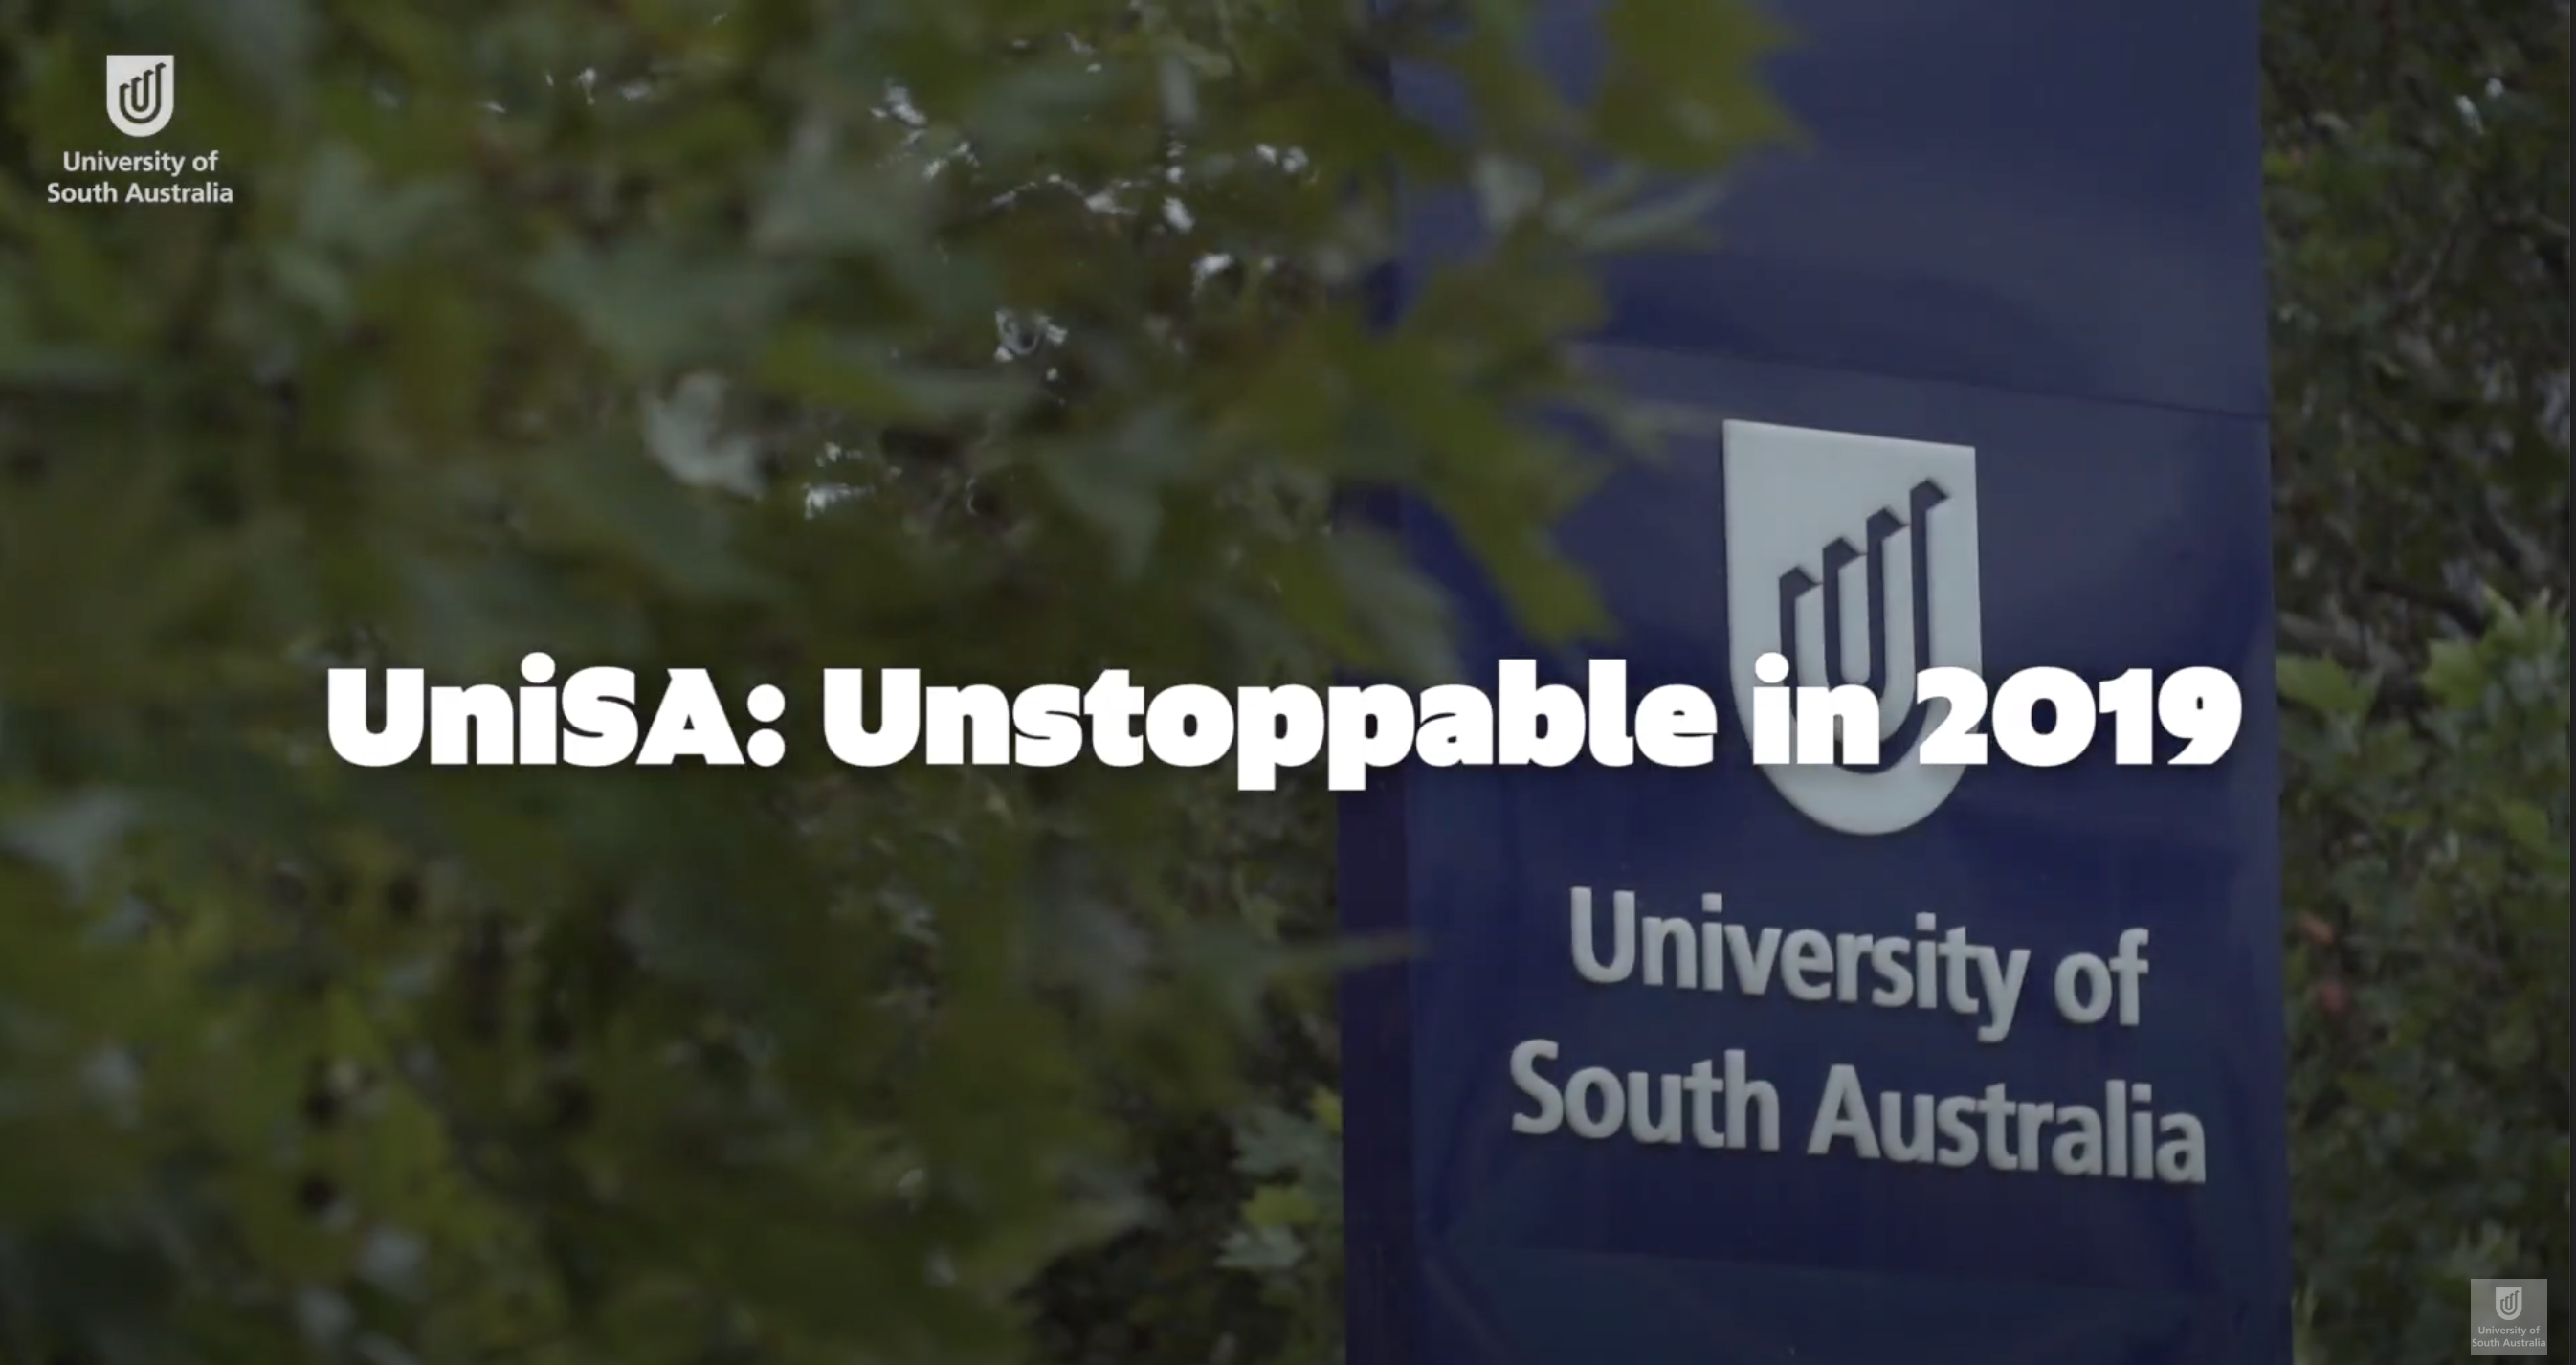 UniSA: Unstoppable in 2019